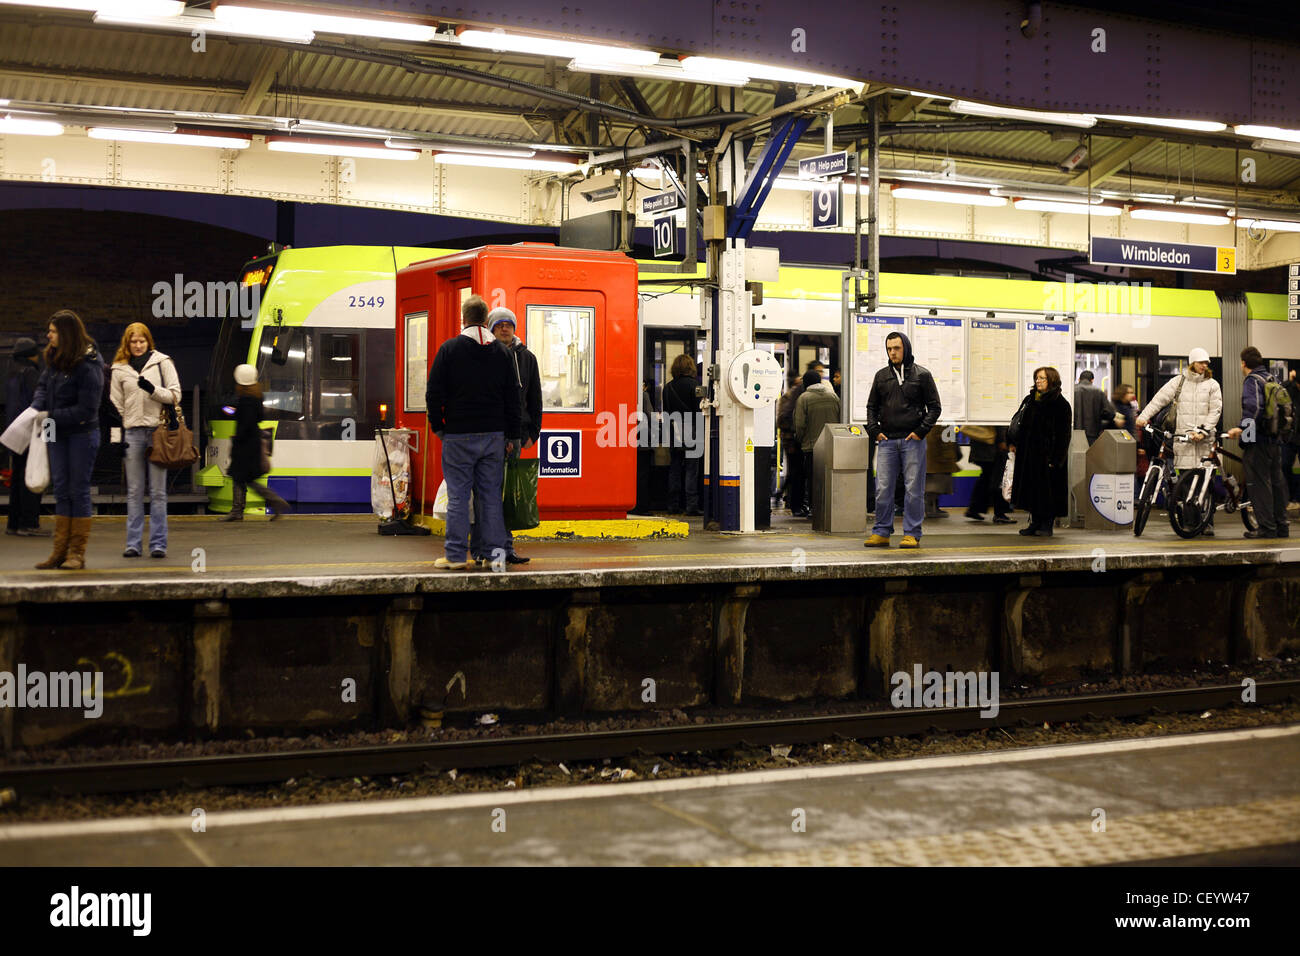 Passengers waiting for a train on a platform at Wimbledon train station in the evening. - Stock Image